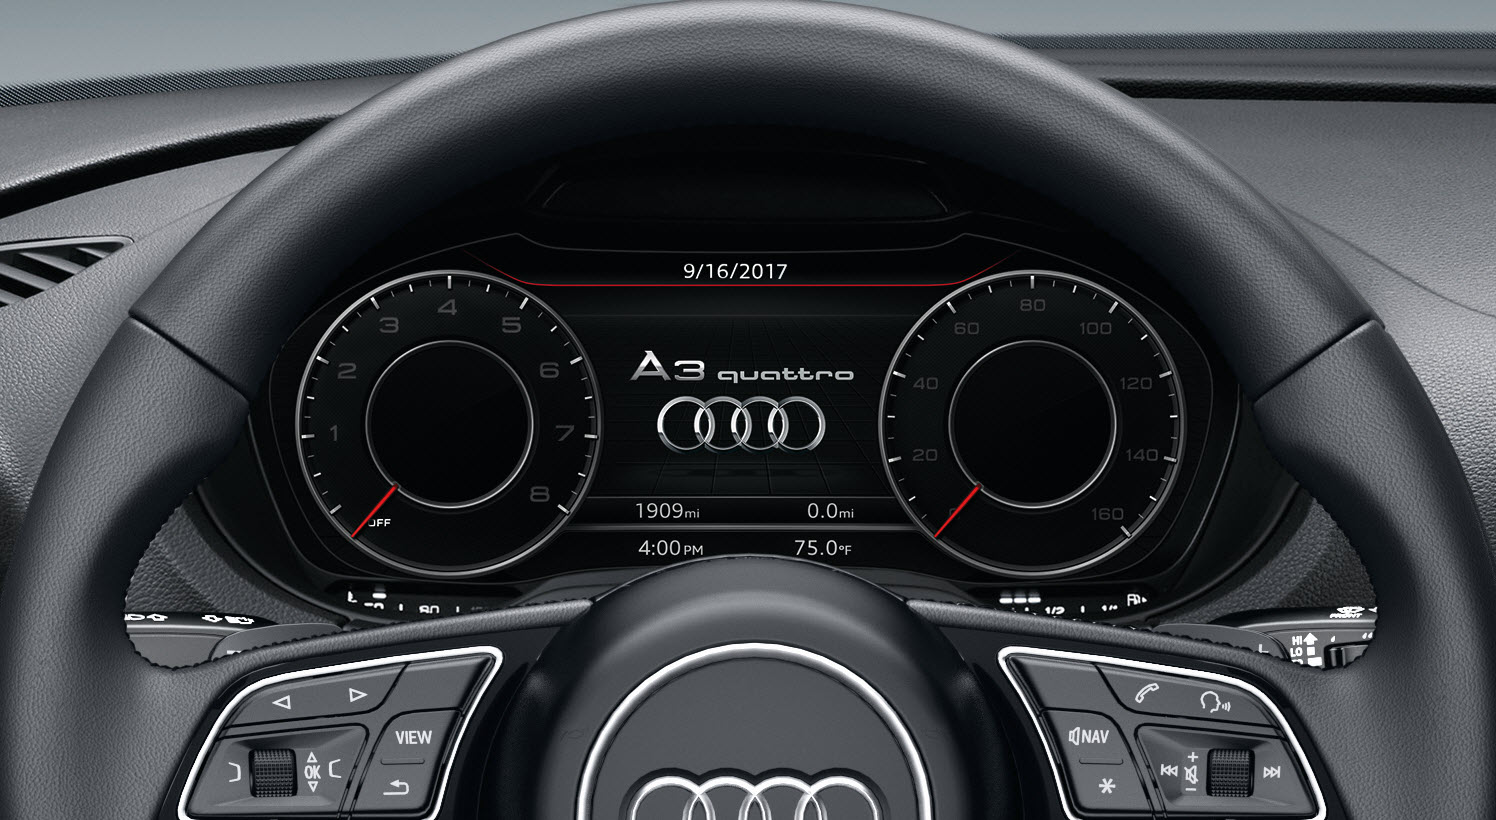 2018 Audi A3 Dashboard Symbols Wilmington De Winner Audi Wilmington